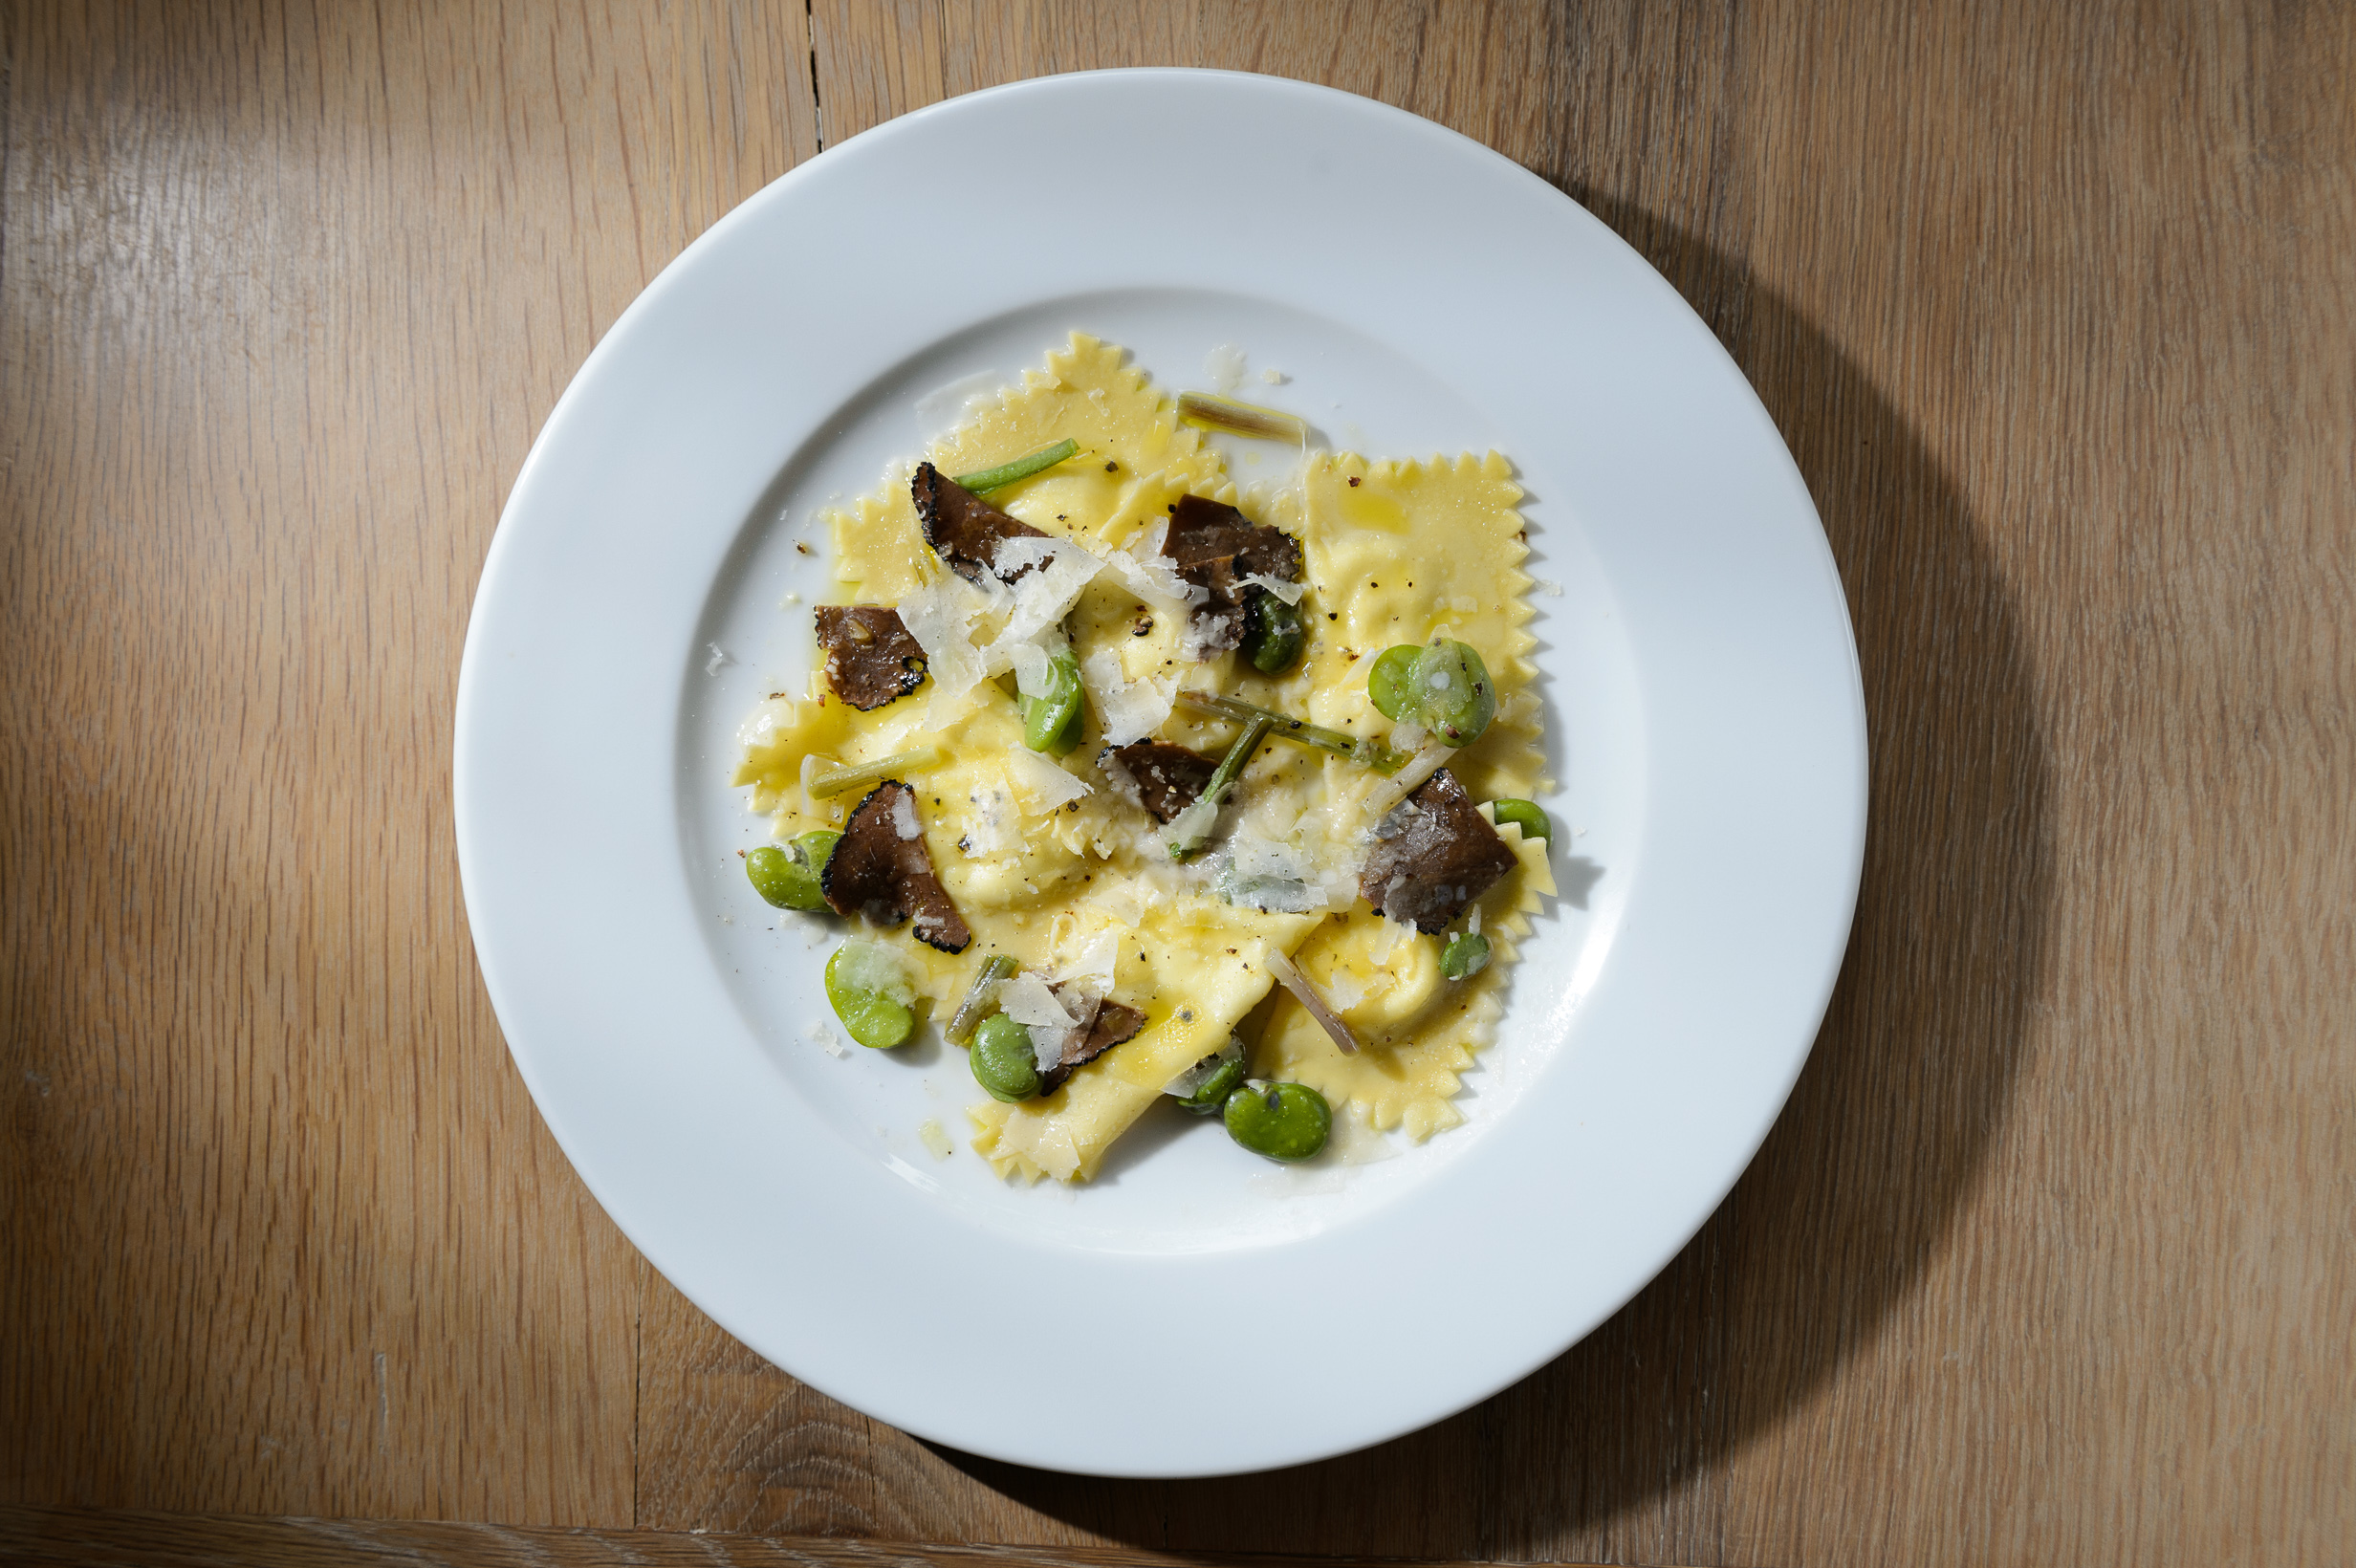 <p>Ravioli with fava beans at&nbsp;Caf&eacute; Altro Paradiso</p>